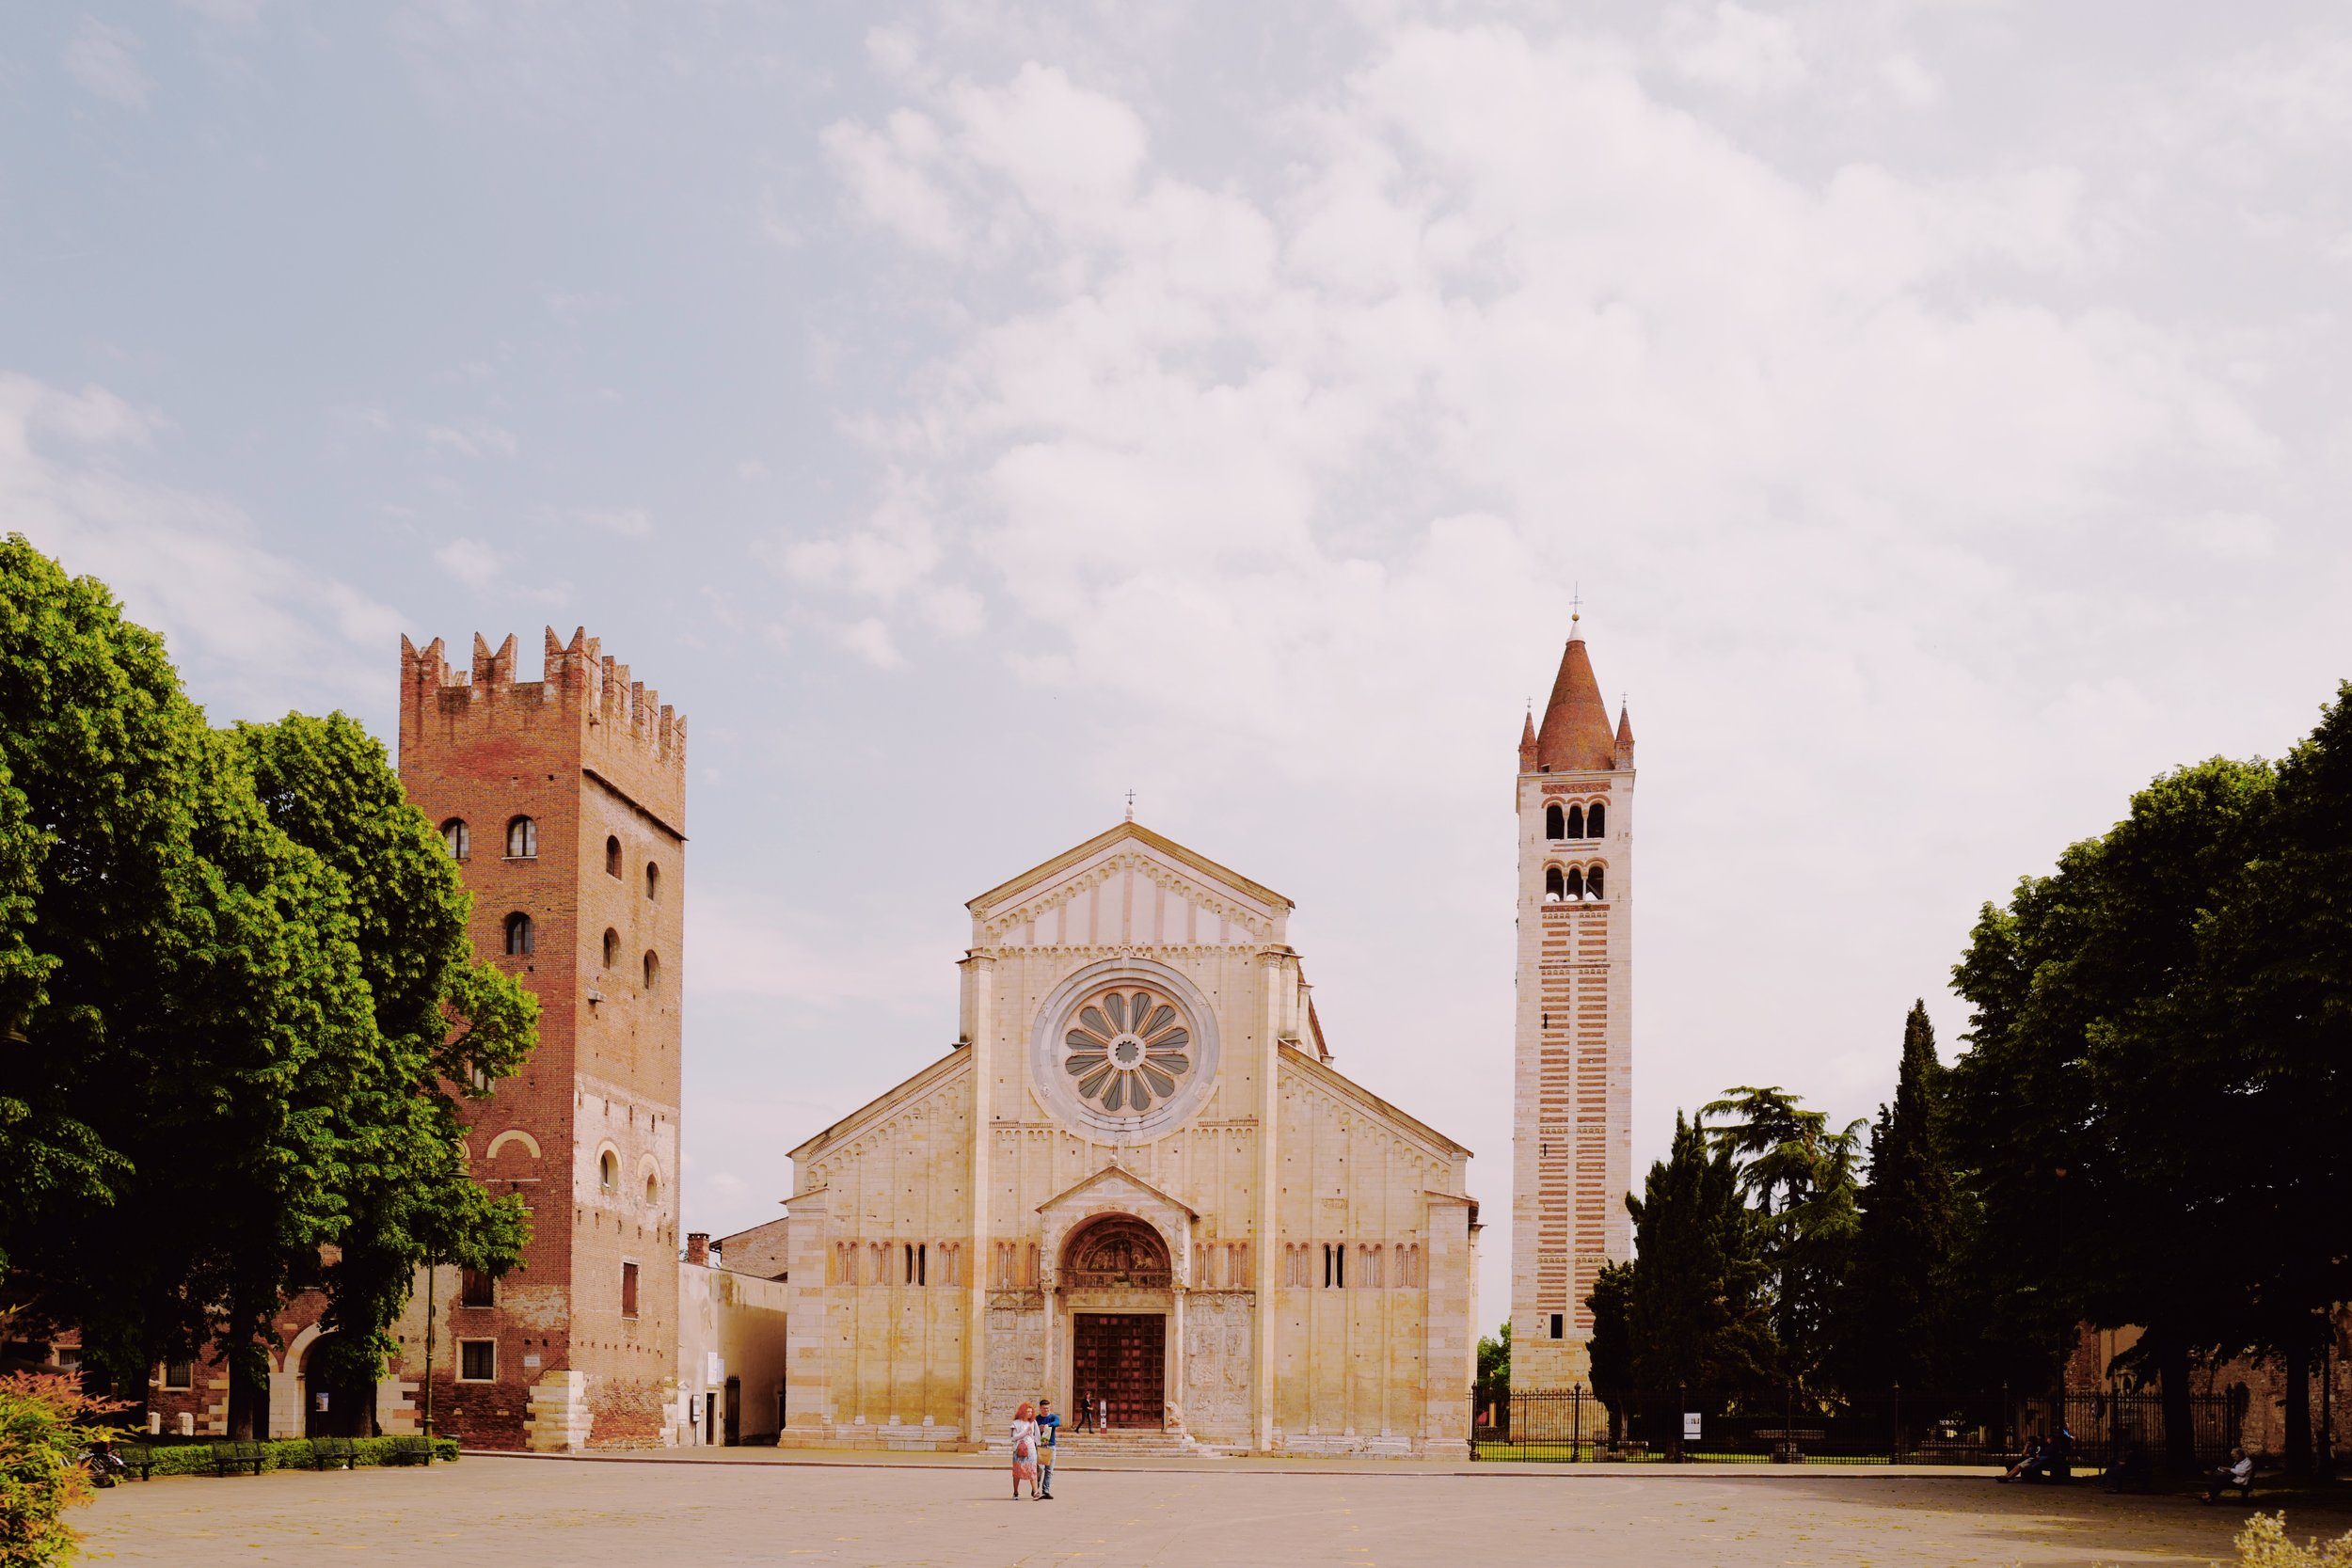 Basilica of San Zeno Maggiore, located across Casa Perbellini